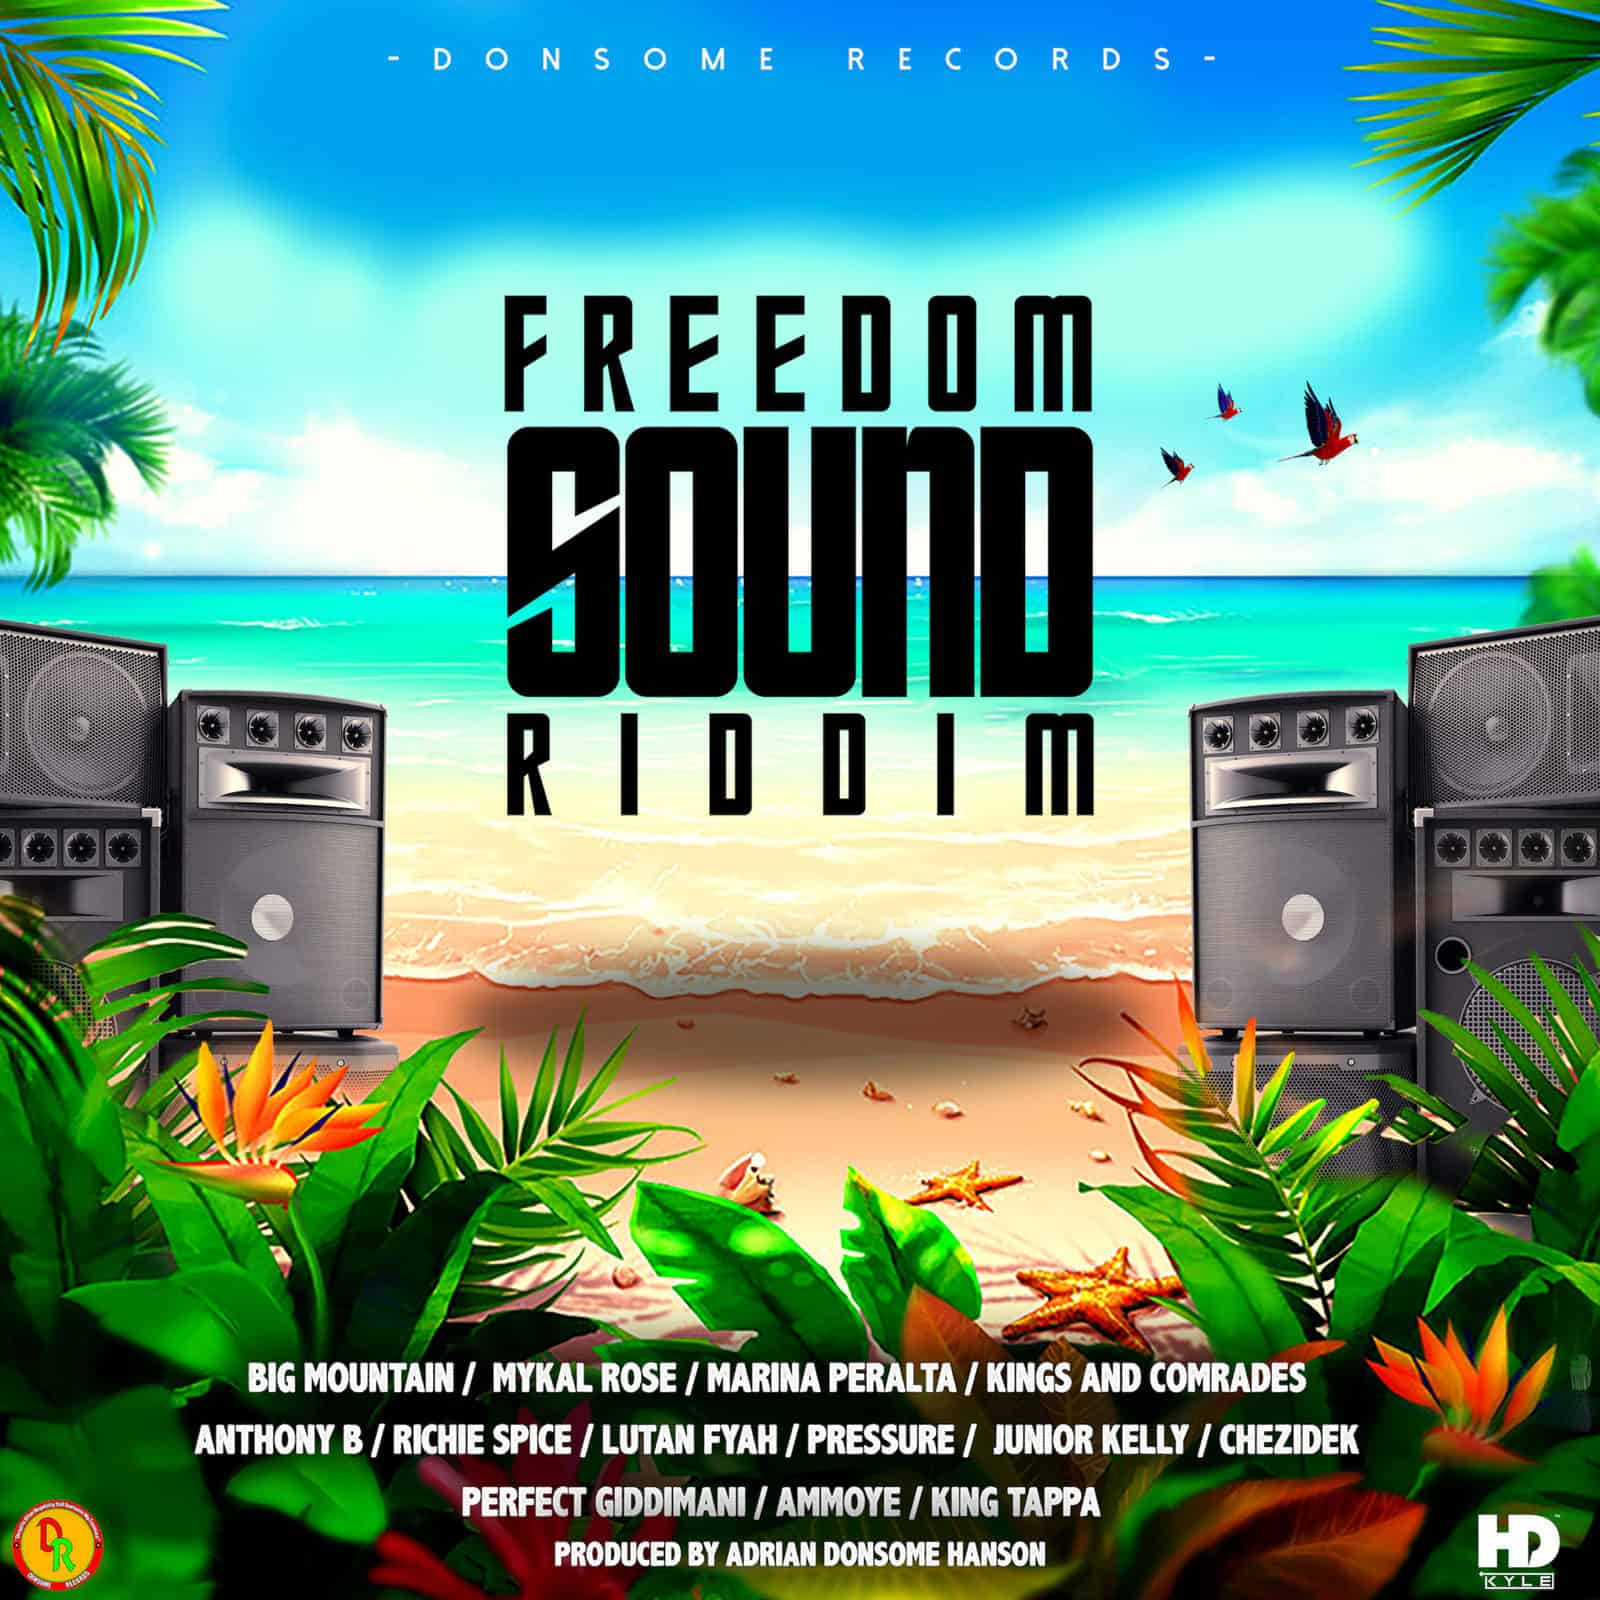 Freedom Sound Riddim by Donsome Records